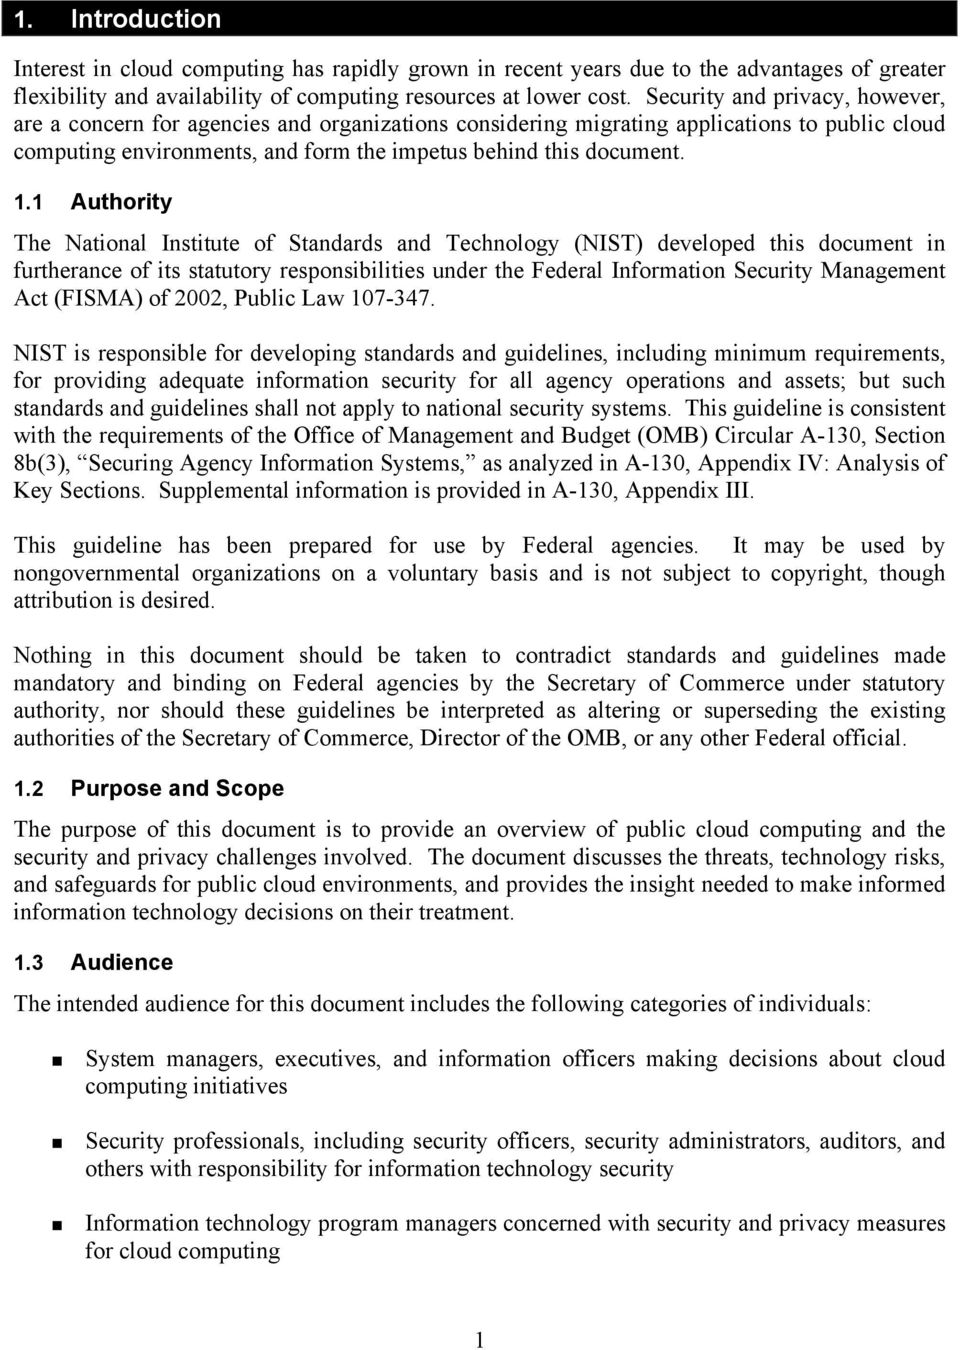 1 Authority The National Institute of Standards and Technology (NIST) developed this document in furtherance of its statutory responsibilities under the Federal Information Security Management Act